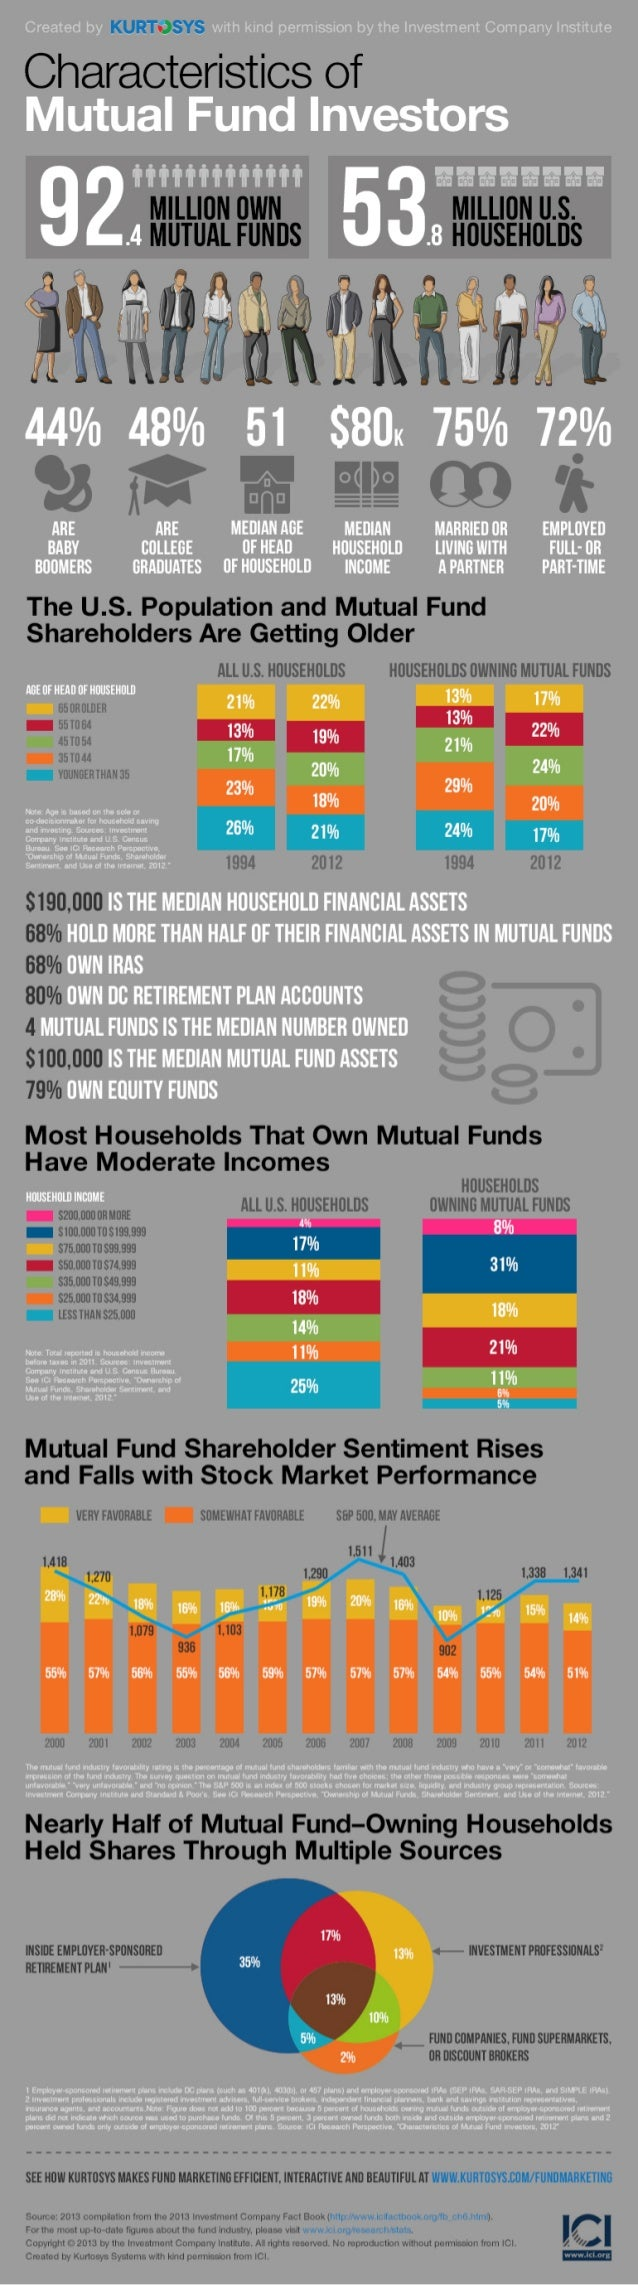 Who's Your Average Mutual Fund Investor? [INFOGRAPHIC]